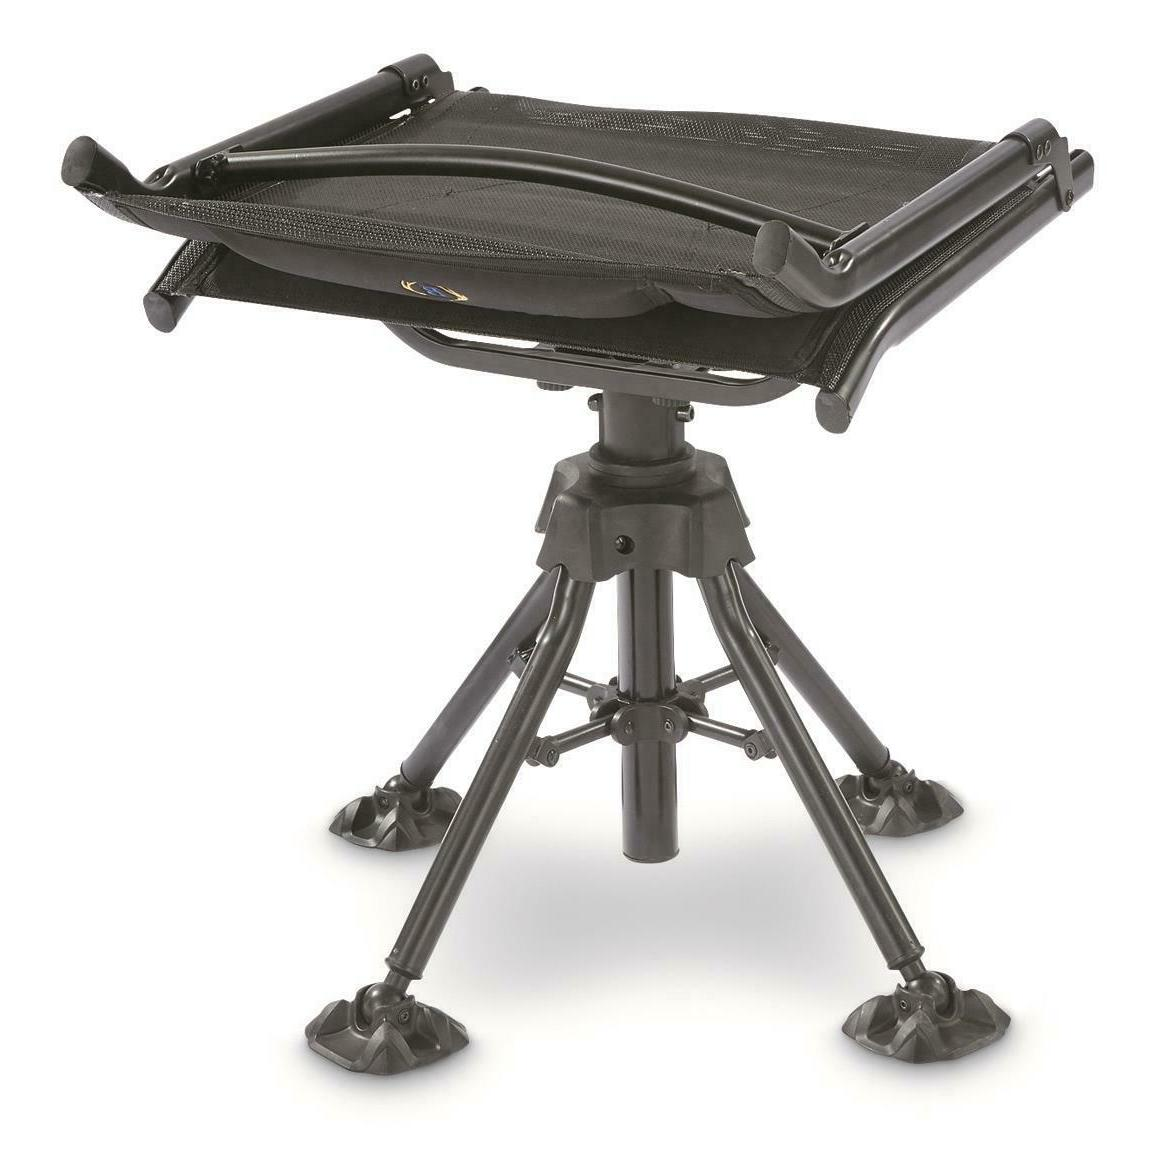 Hunting Armrests Swivel Portable Hunting Seat